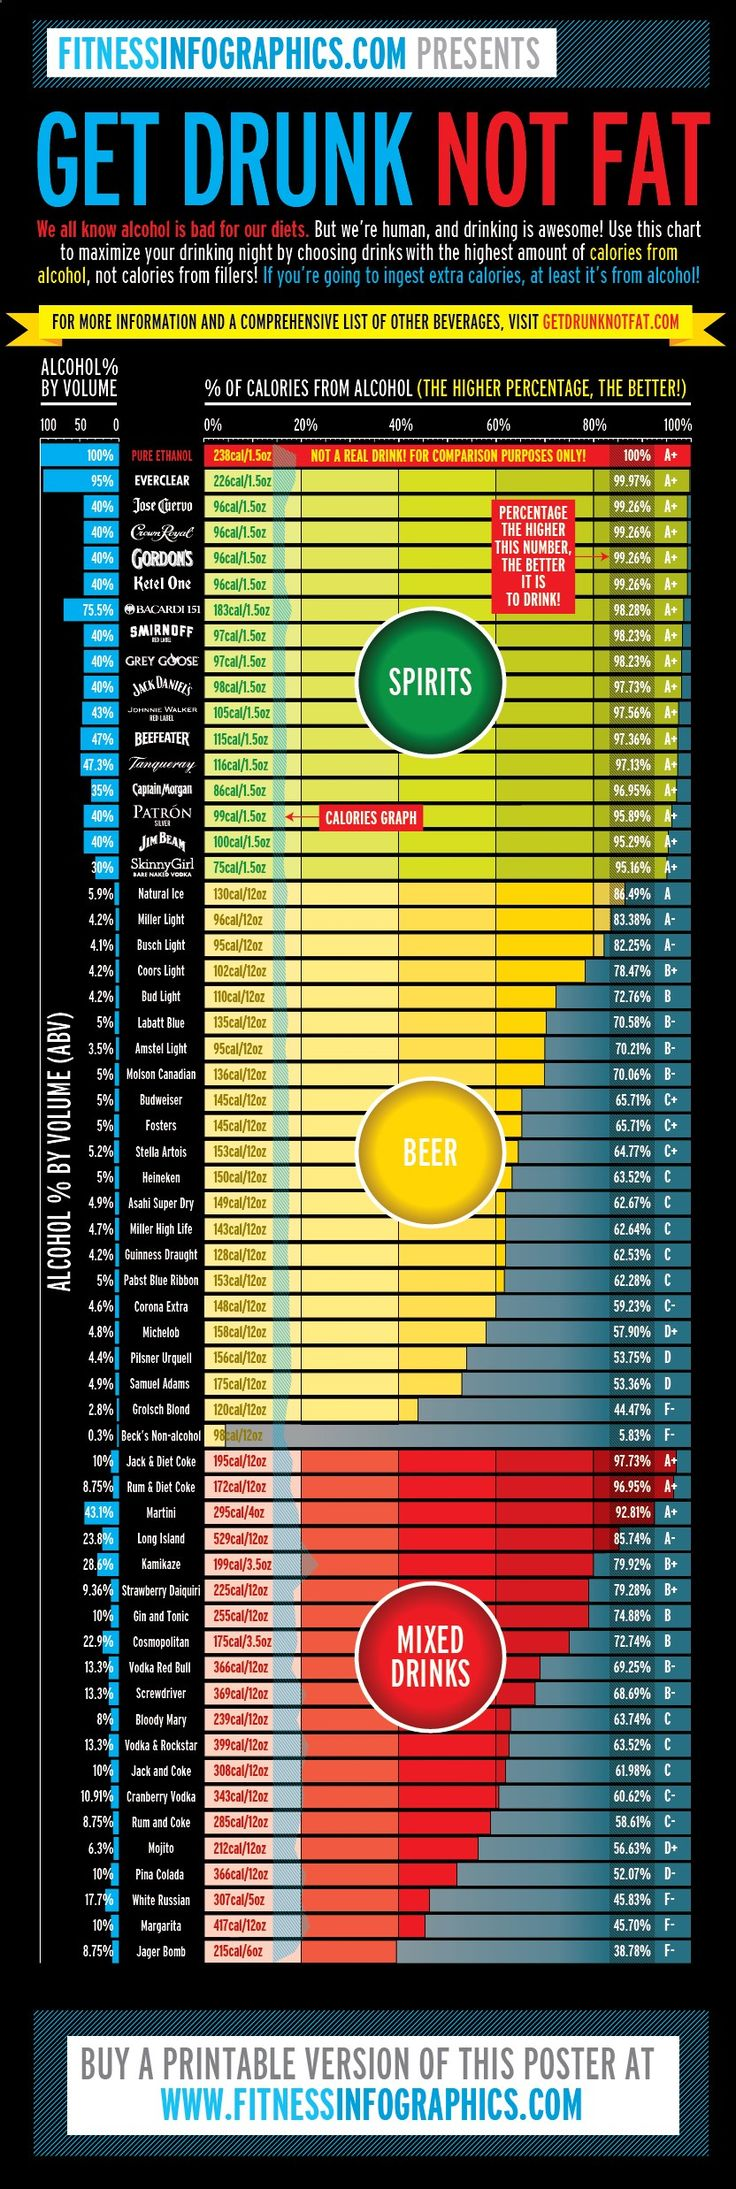 Which alcohol types are heavy on calories? [INFOGRAPHIC]